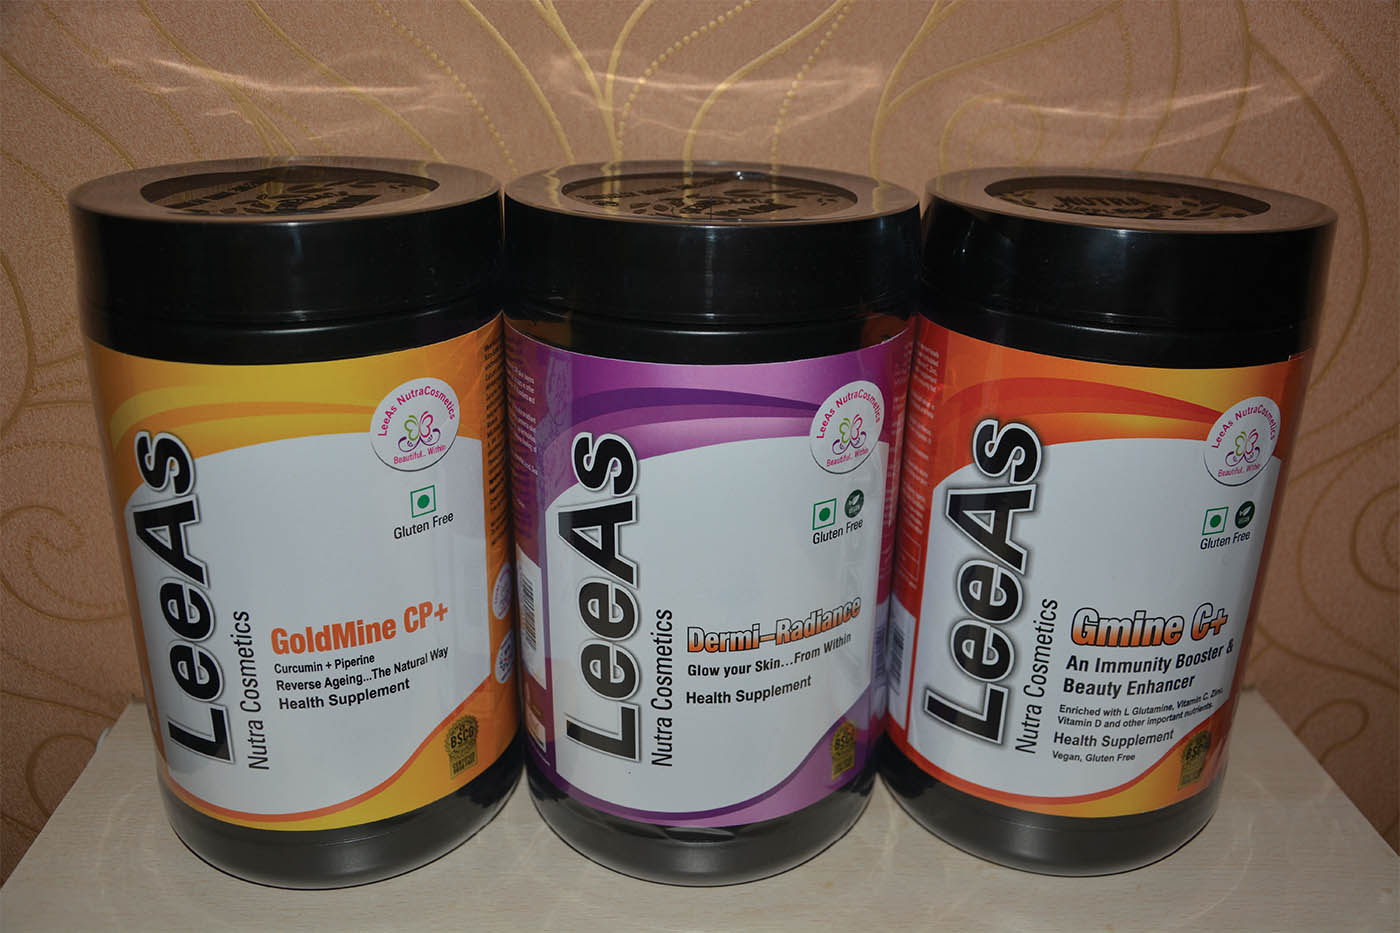 LeeAS presents products for healthy living